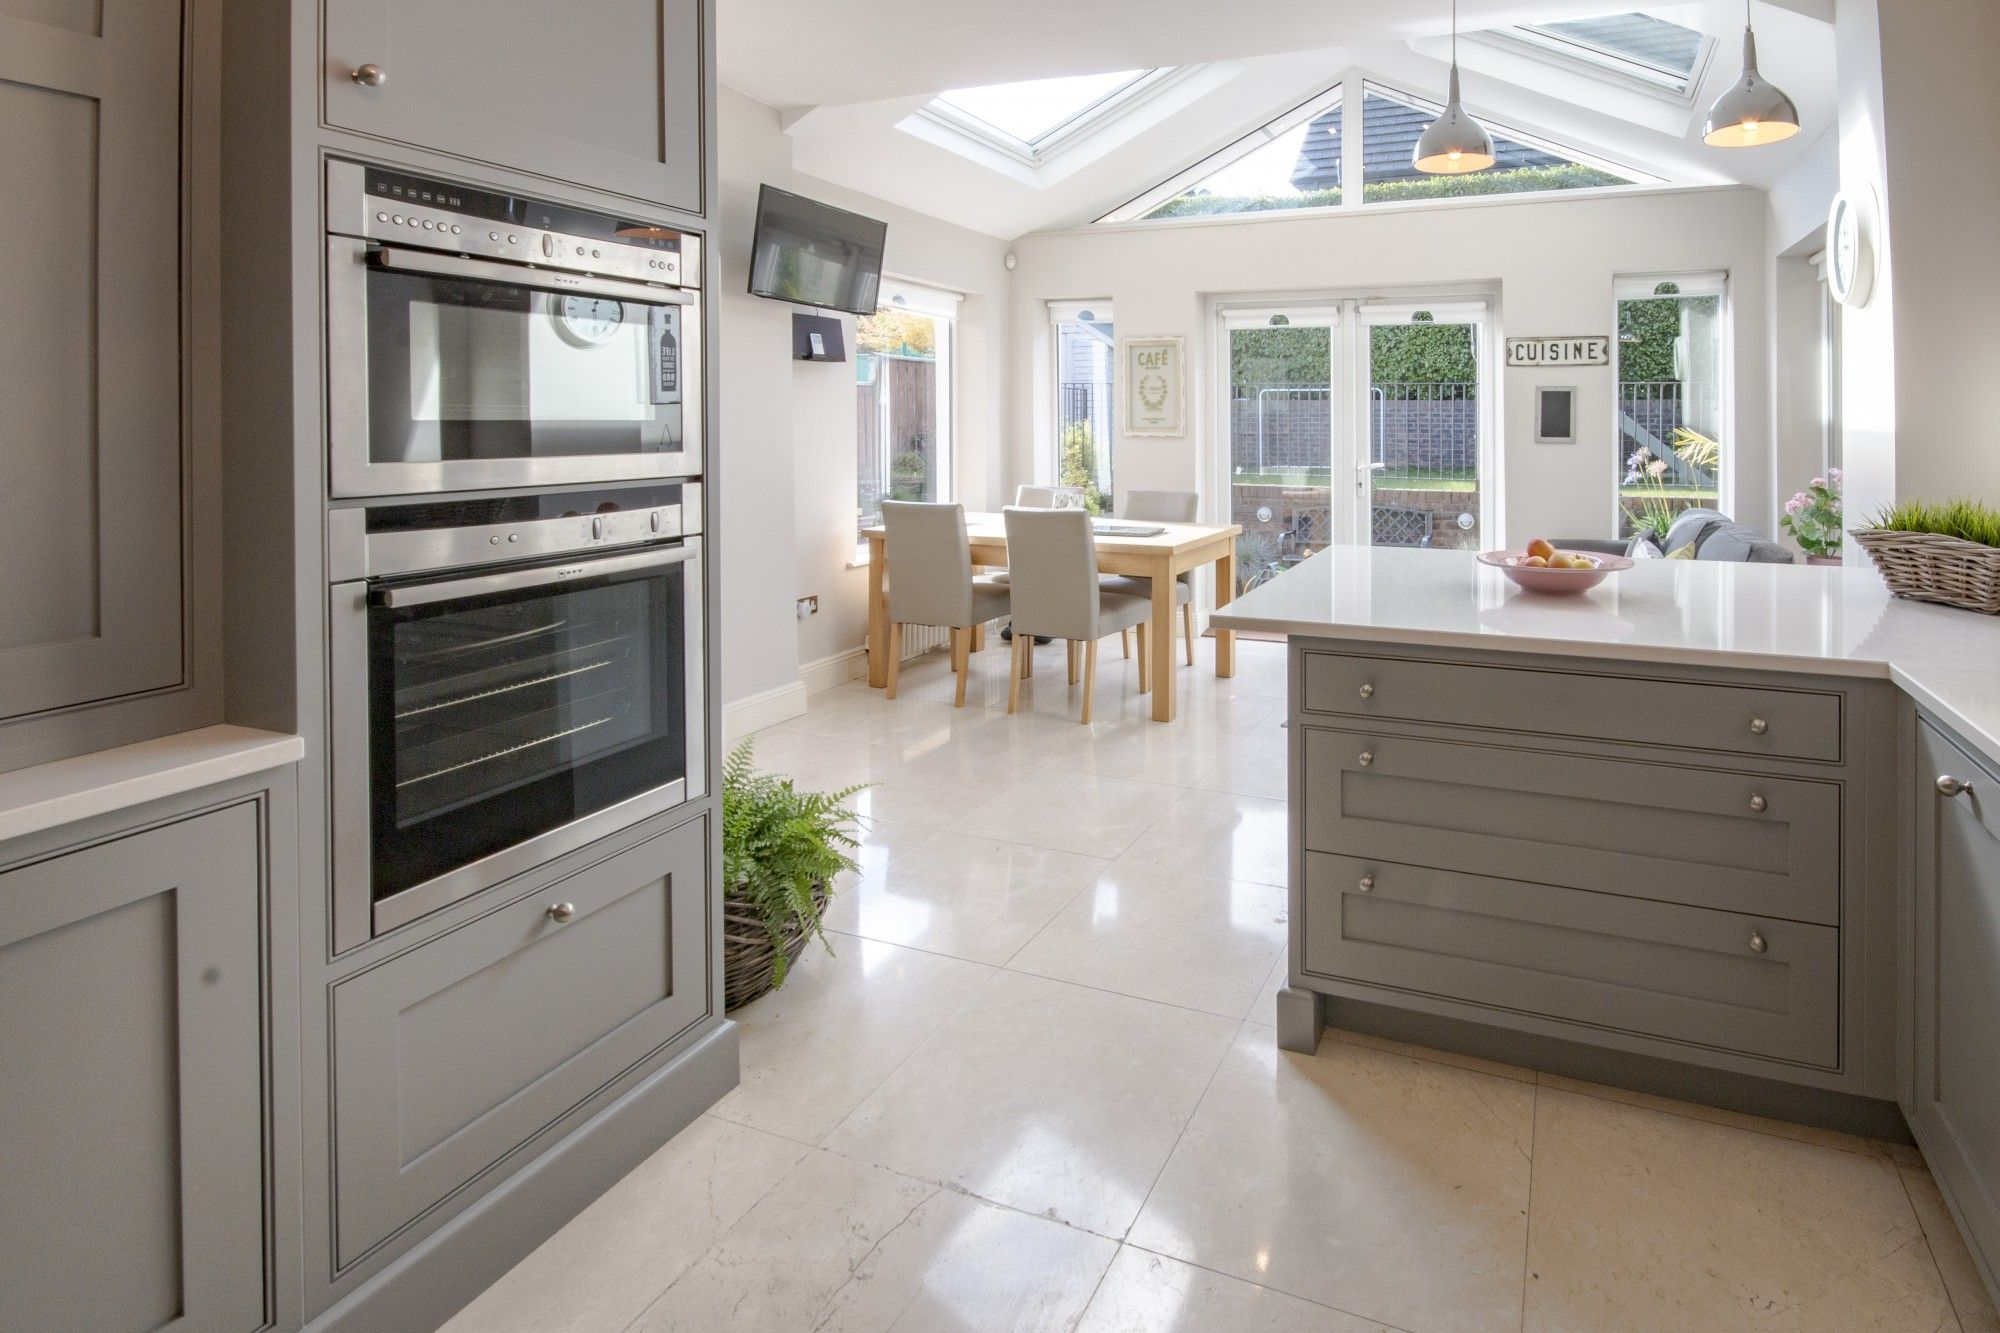 Best Image Result For Kitchens Farrow And Ball Manor House Grey 400 x 300